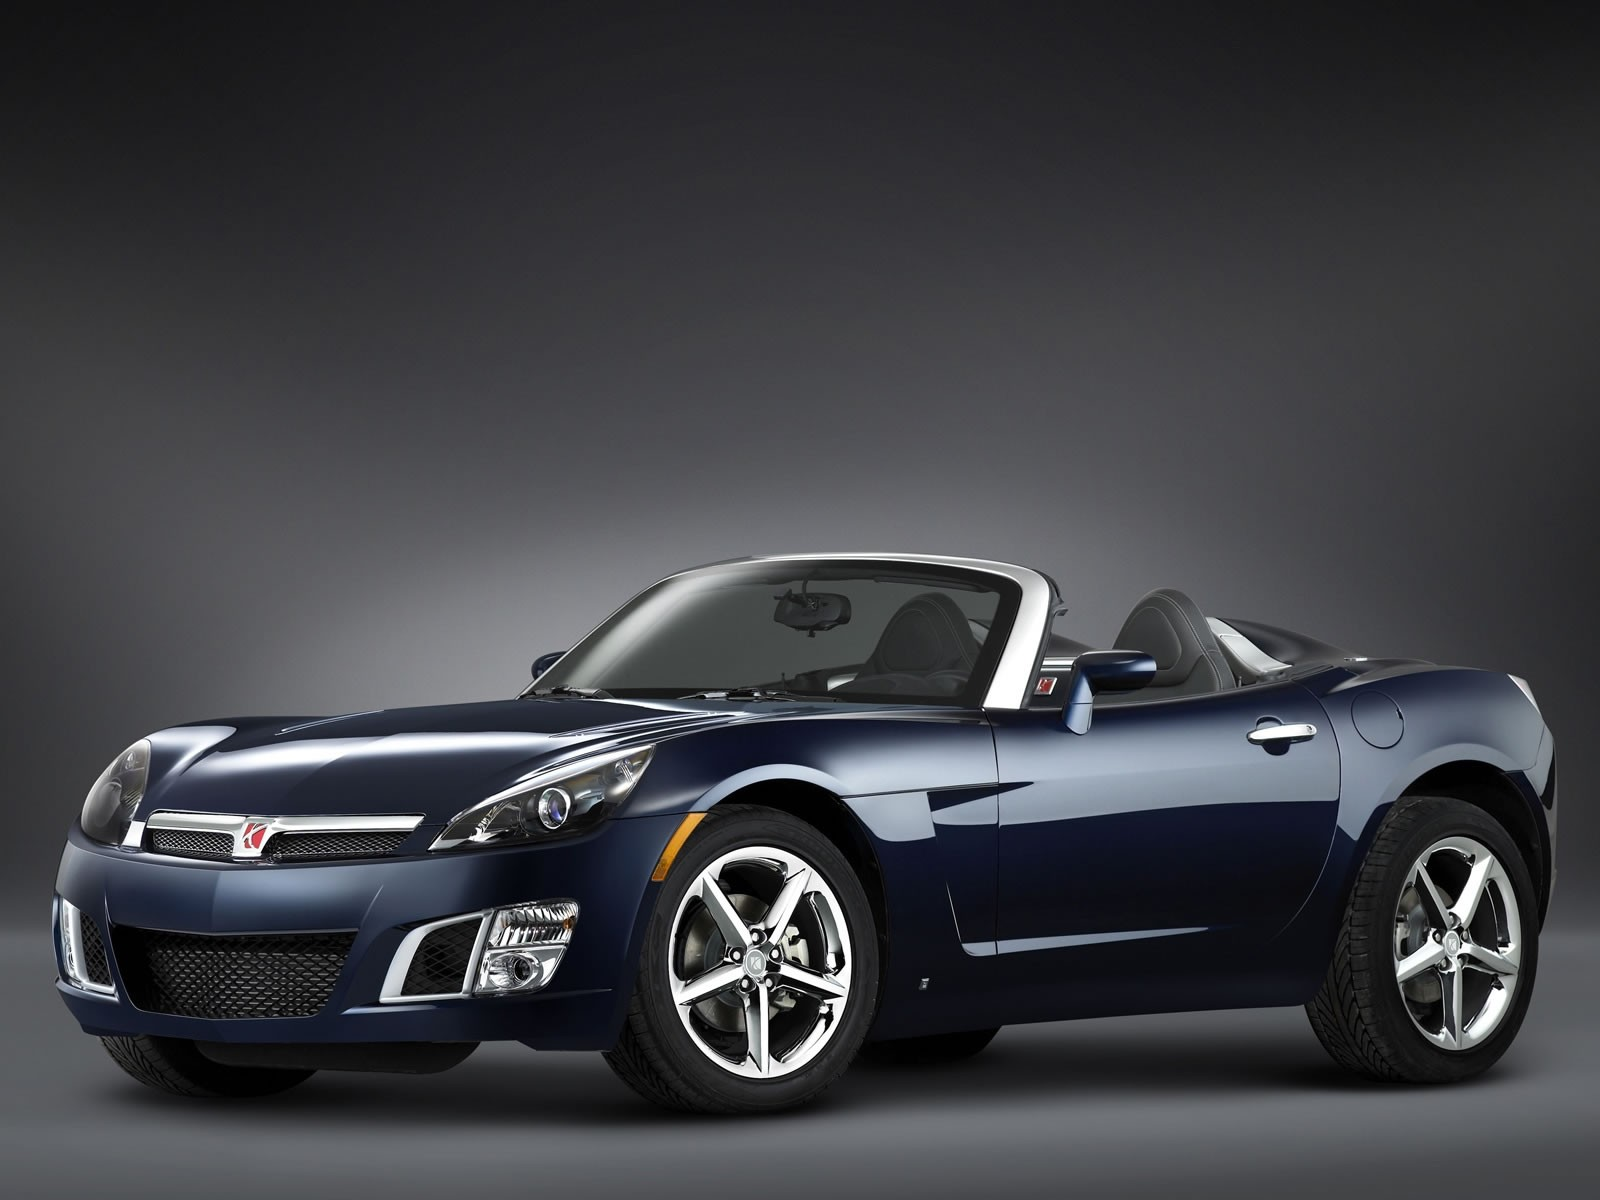 2007 Saturn Sky Convertible Top